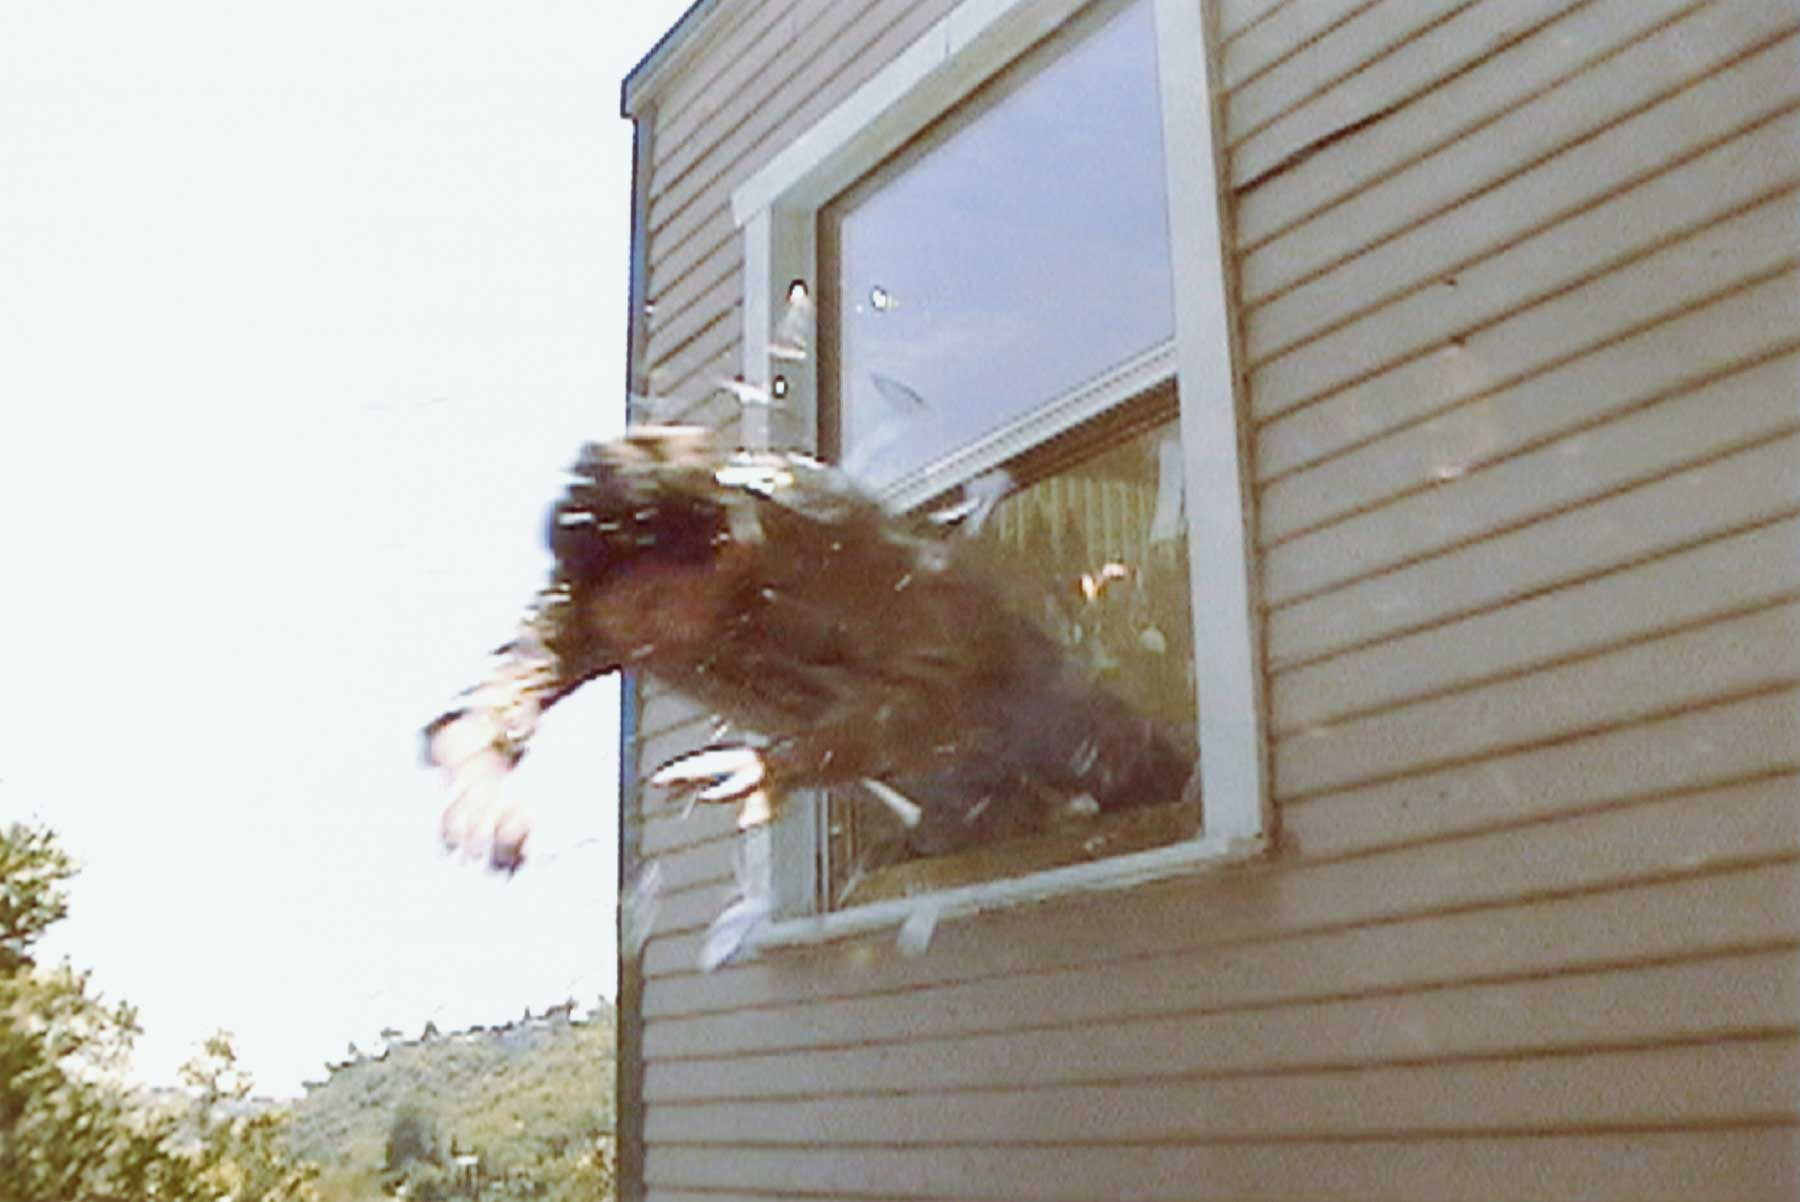 A man jumping out of a window.